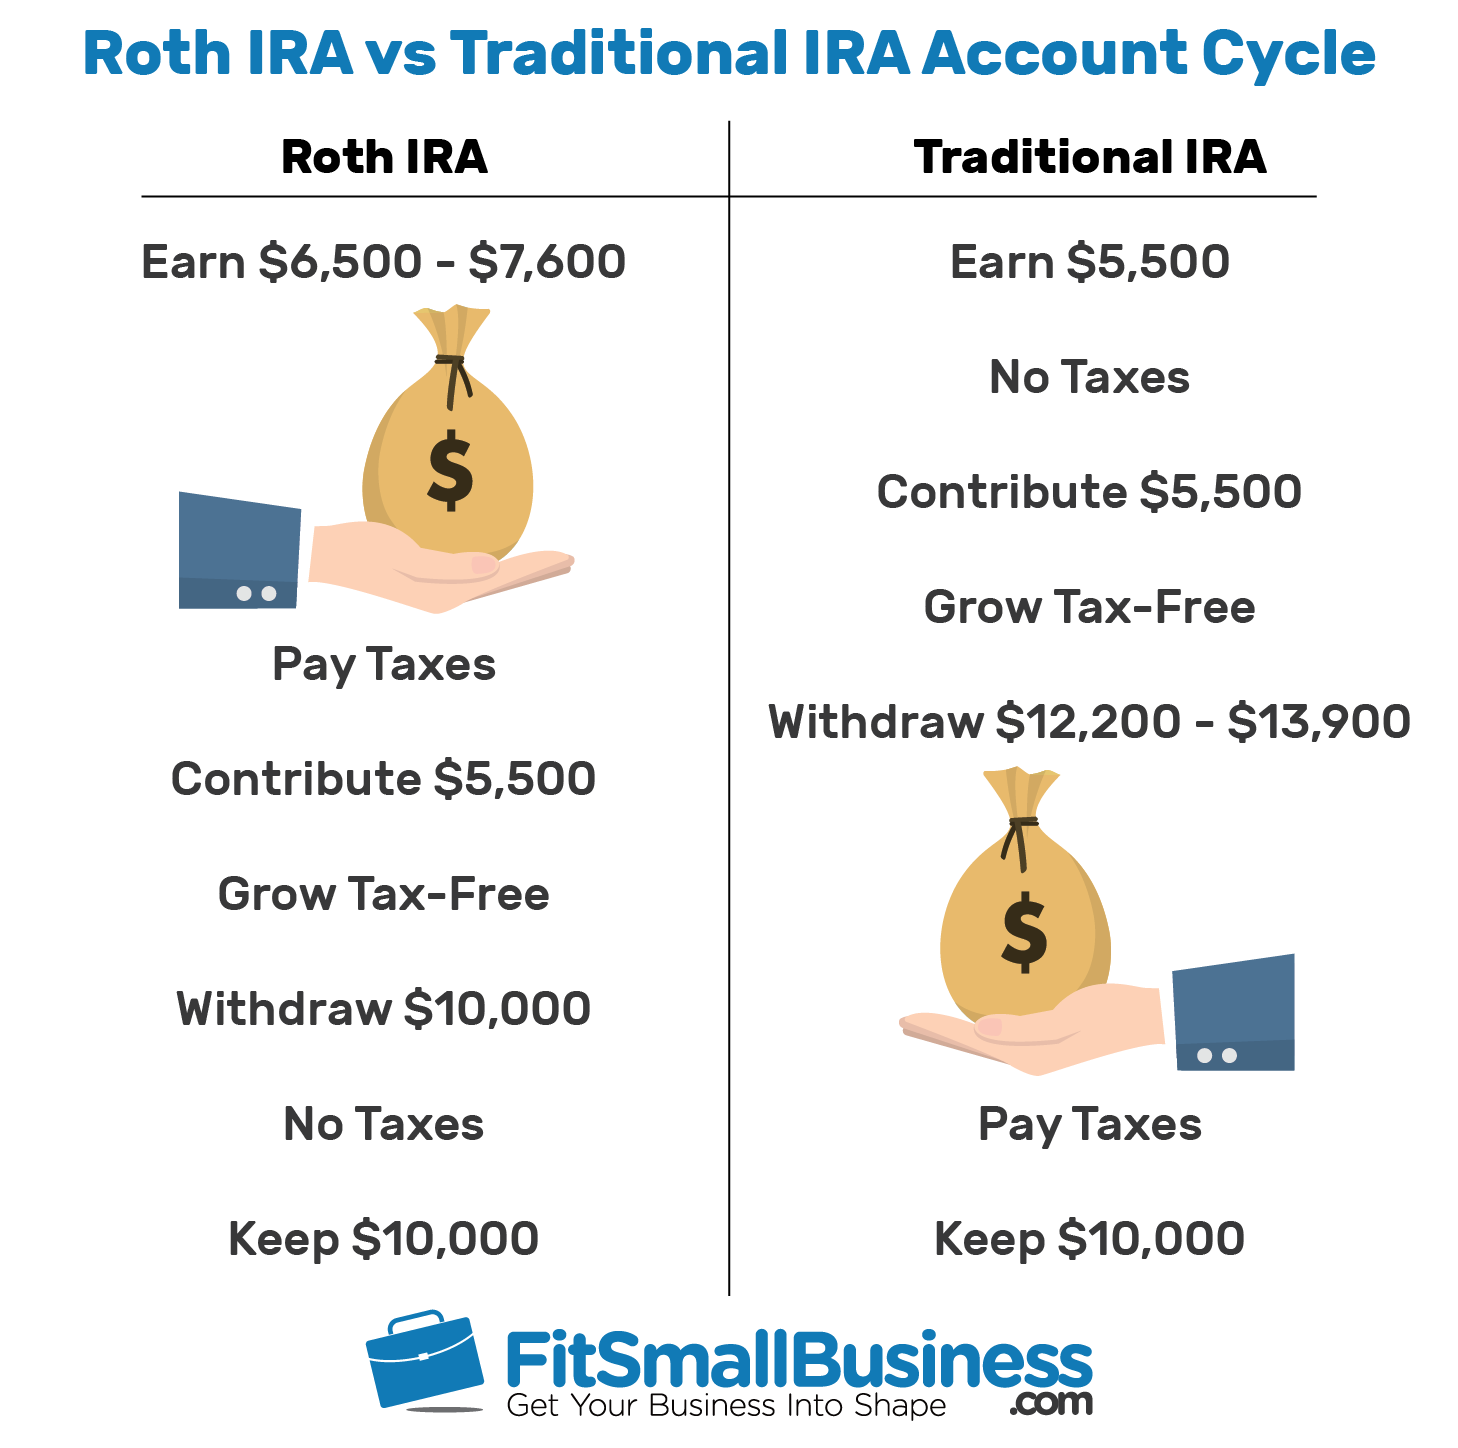 Can i trade options in roth ira